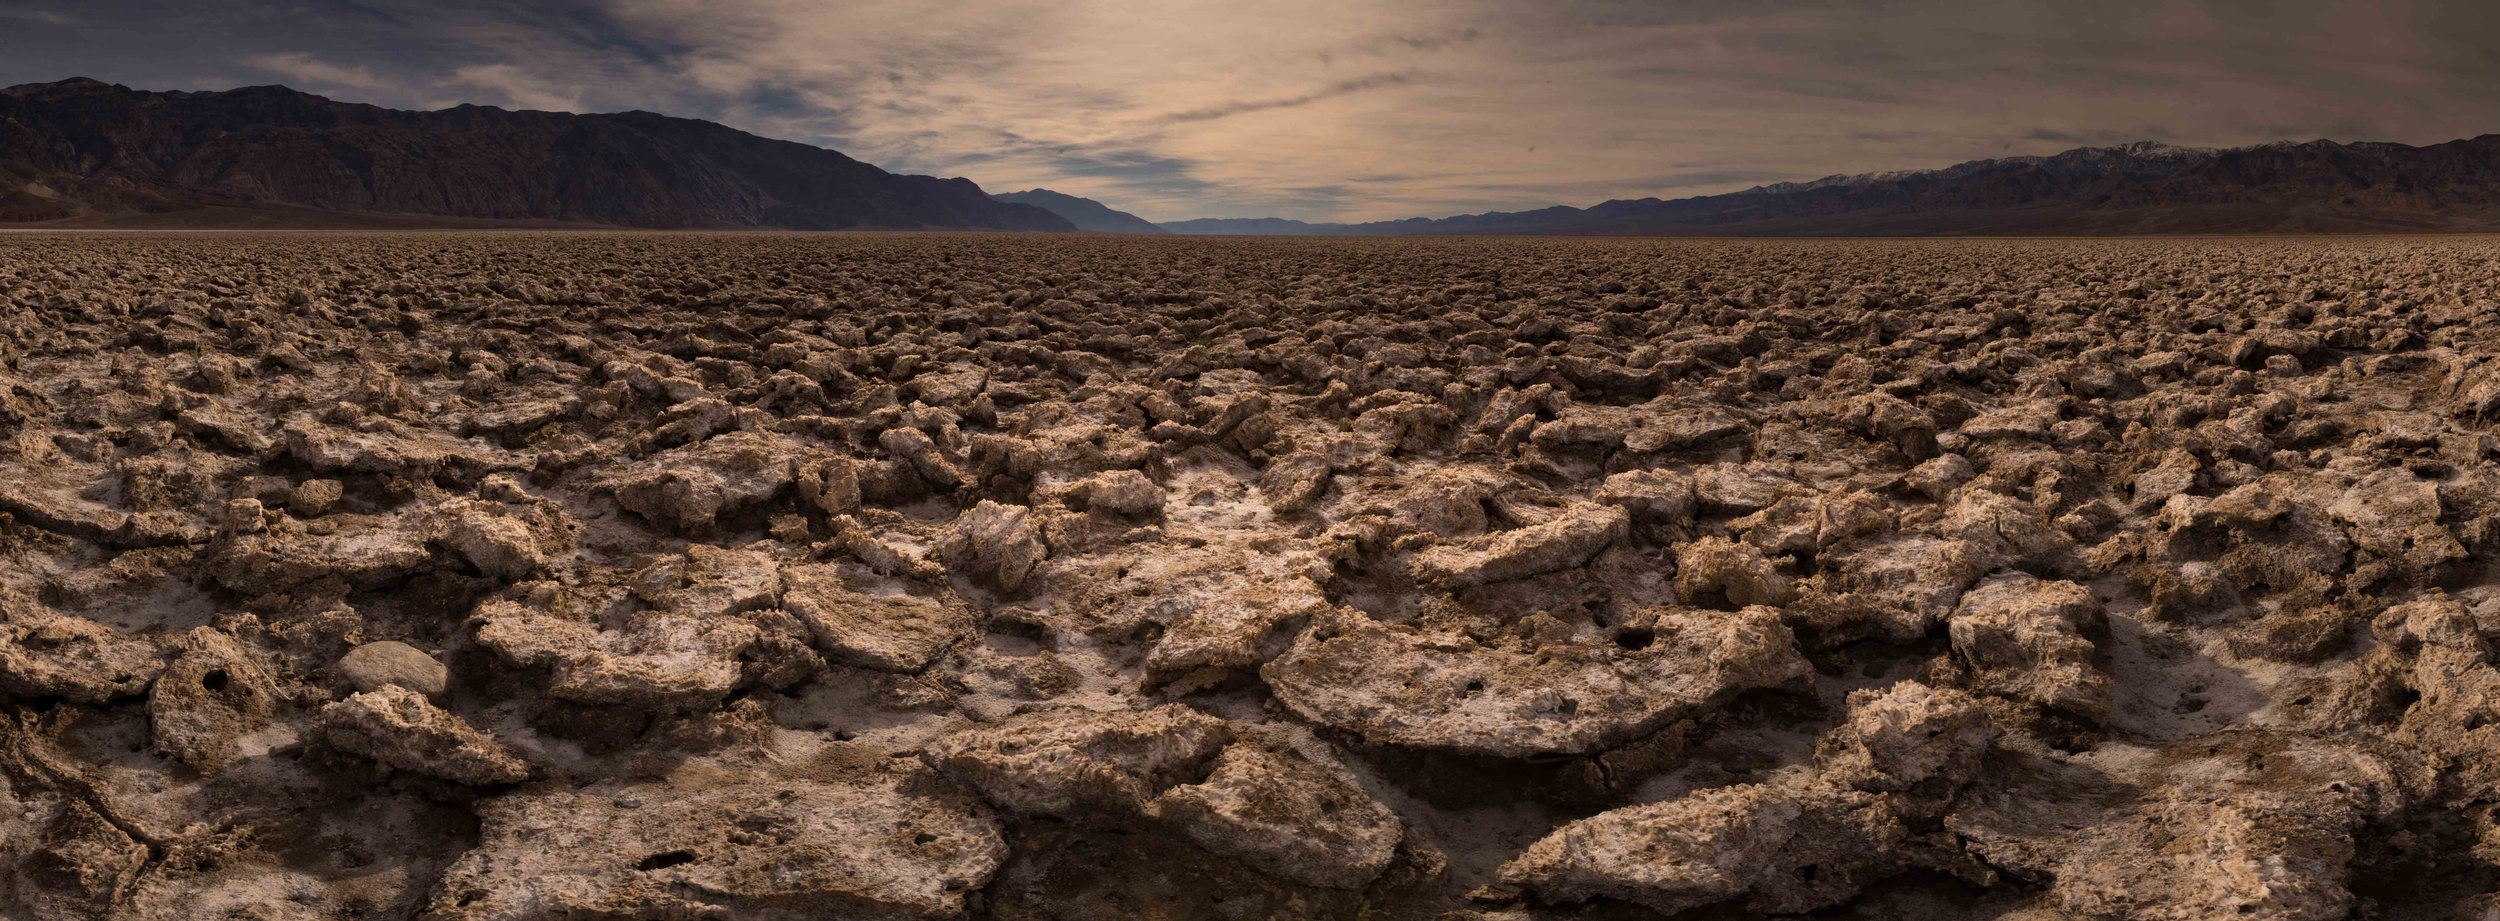 Death Valley 4.jpg